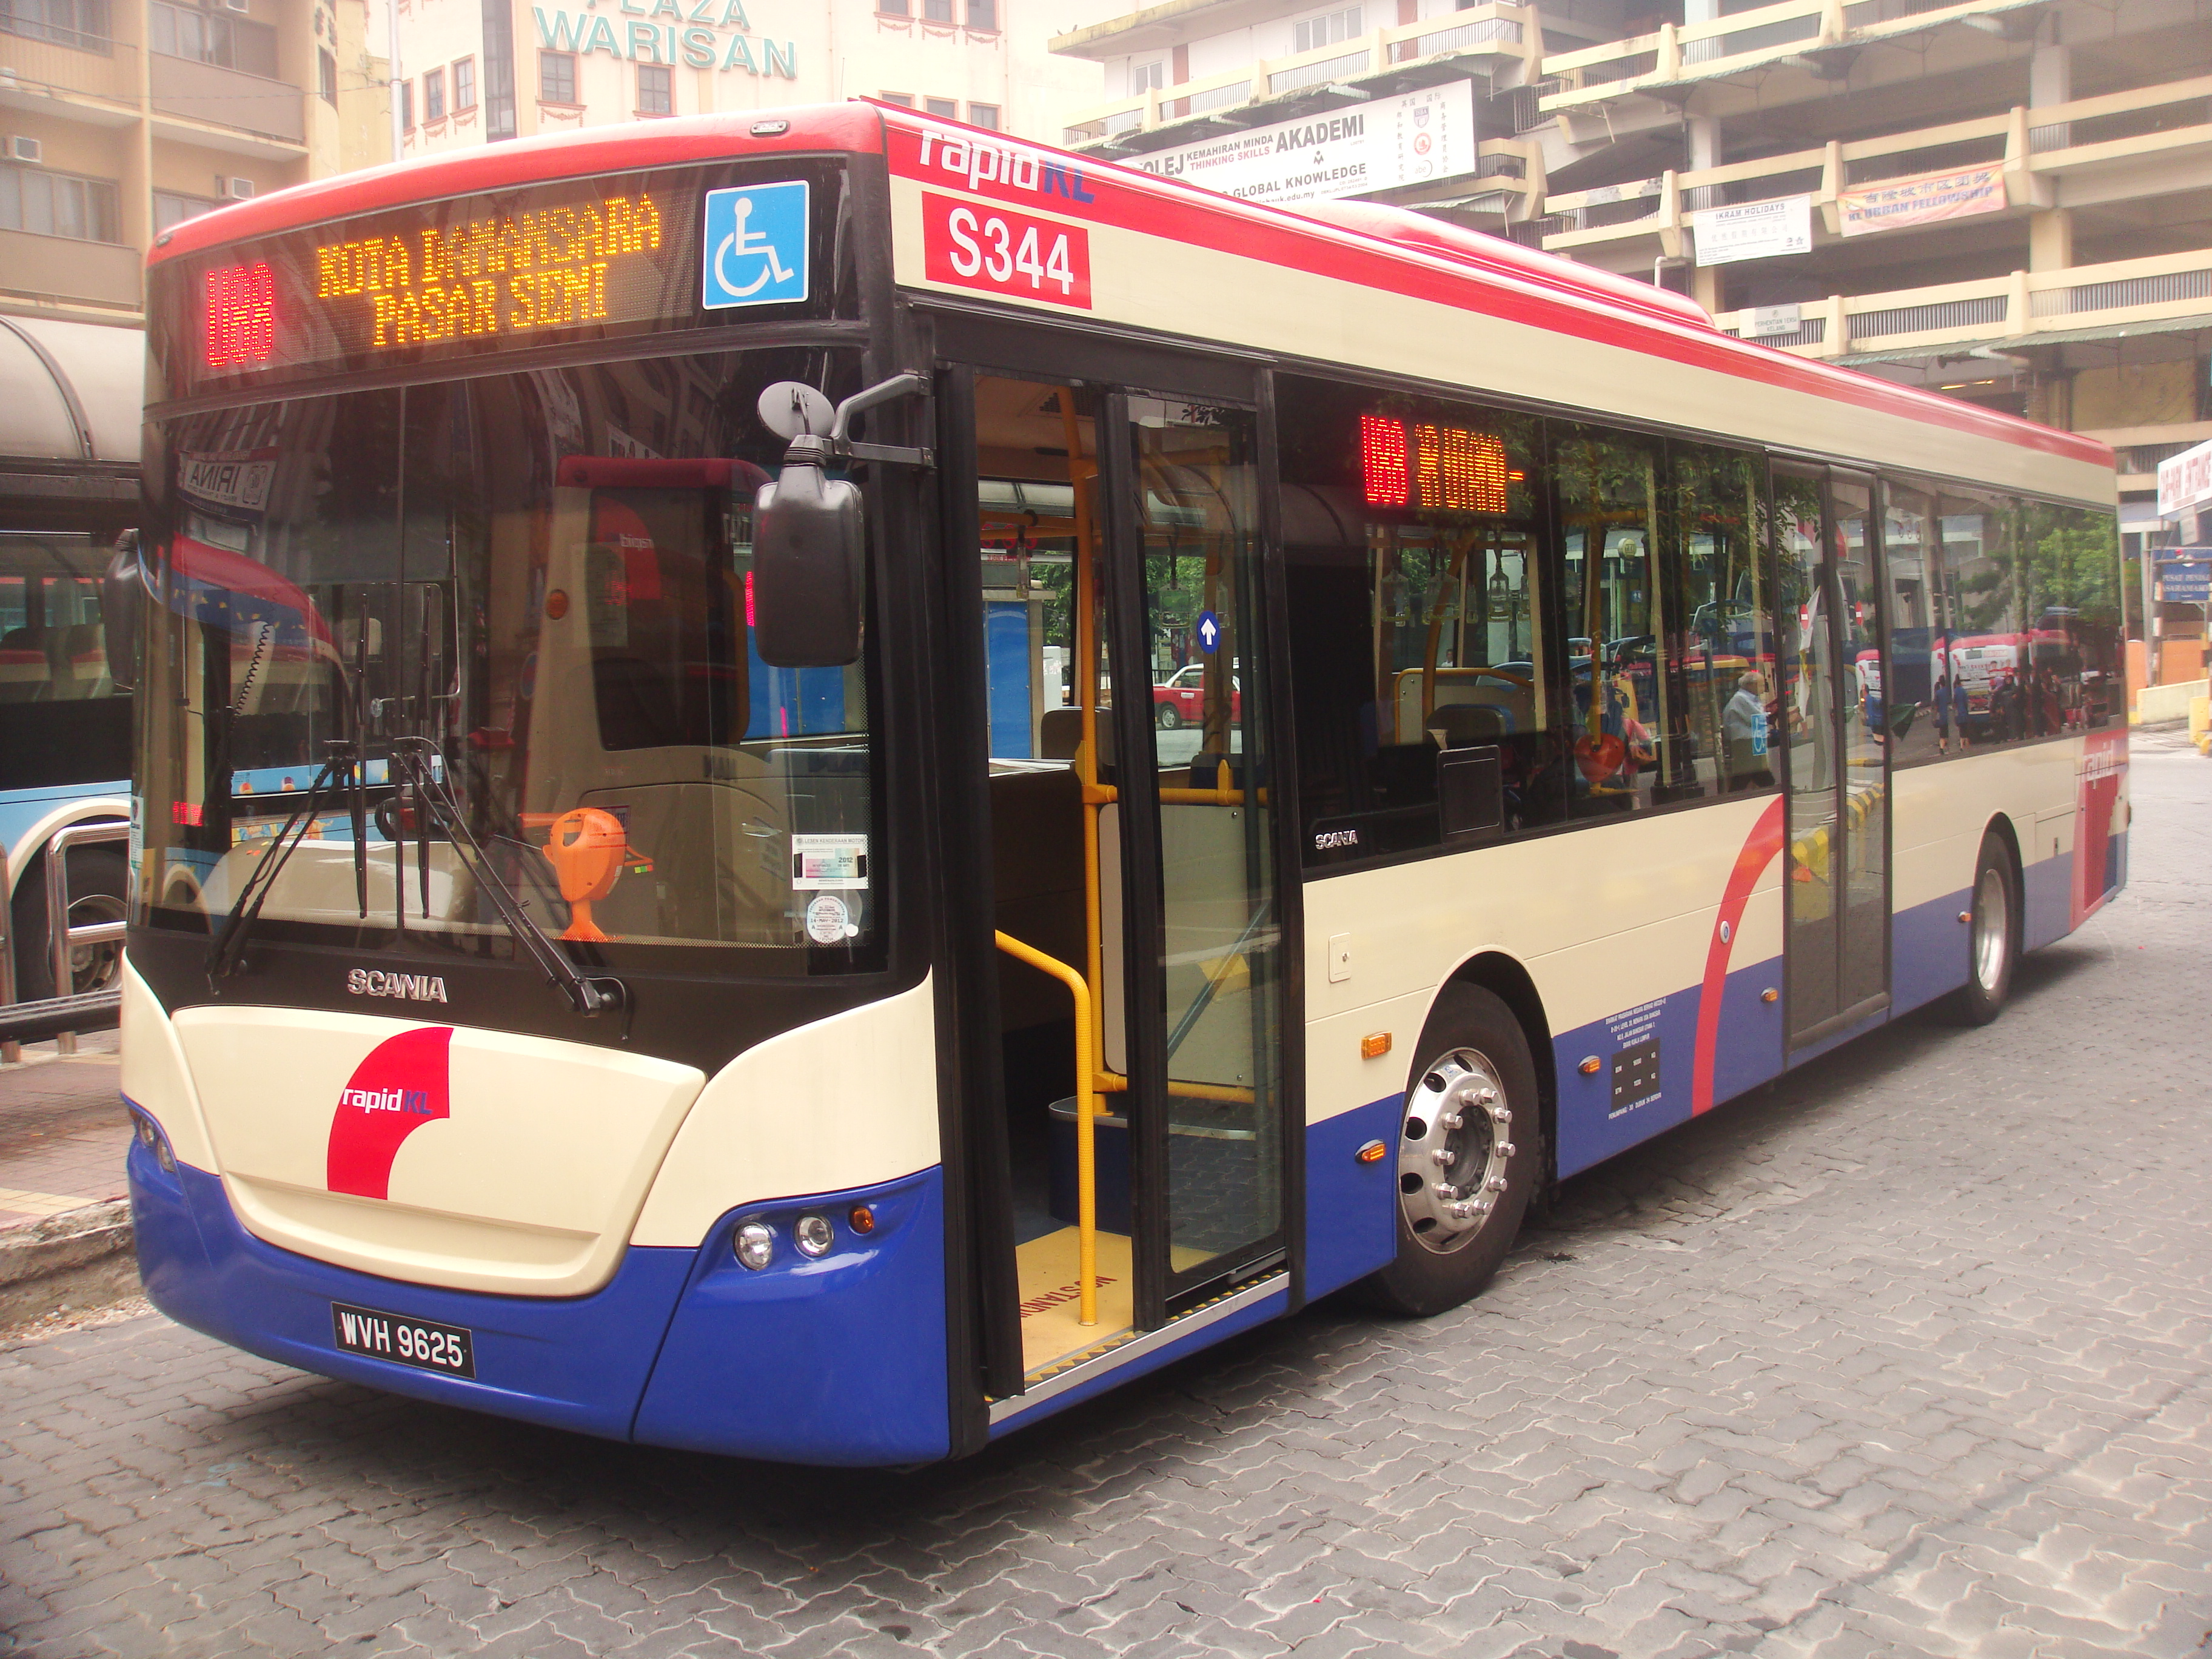 public transportation in malaysia Transportation in kuala lumpur is diverse and efficient, offering an extensive   nonetheless, first-time visitors should get to know the city's public transportation,  especially the  there are two types of taxis in malaysia: local and long-distance.